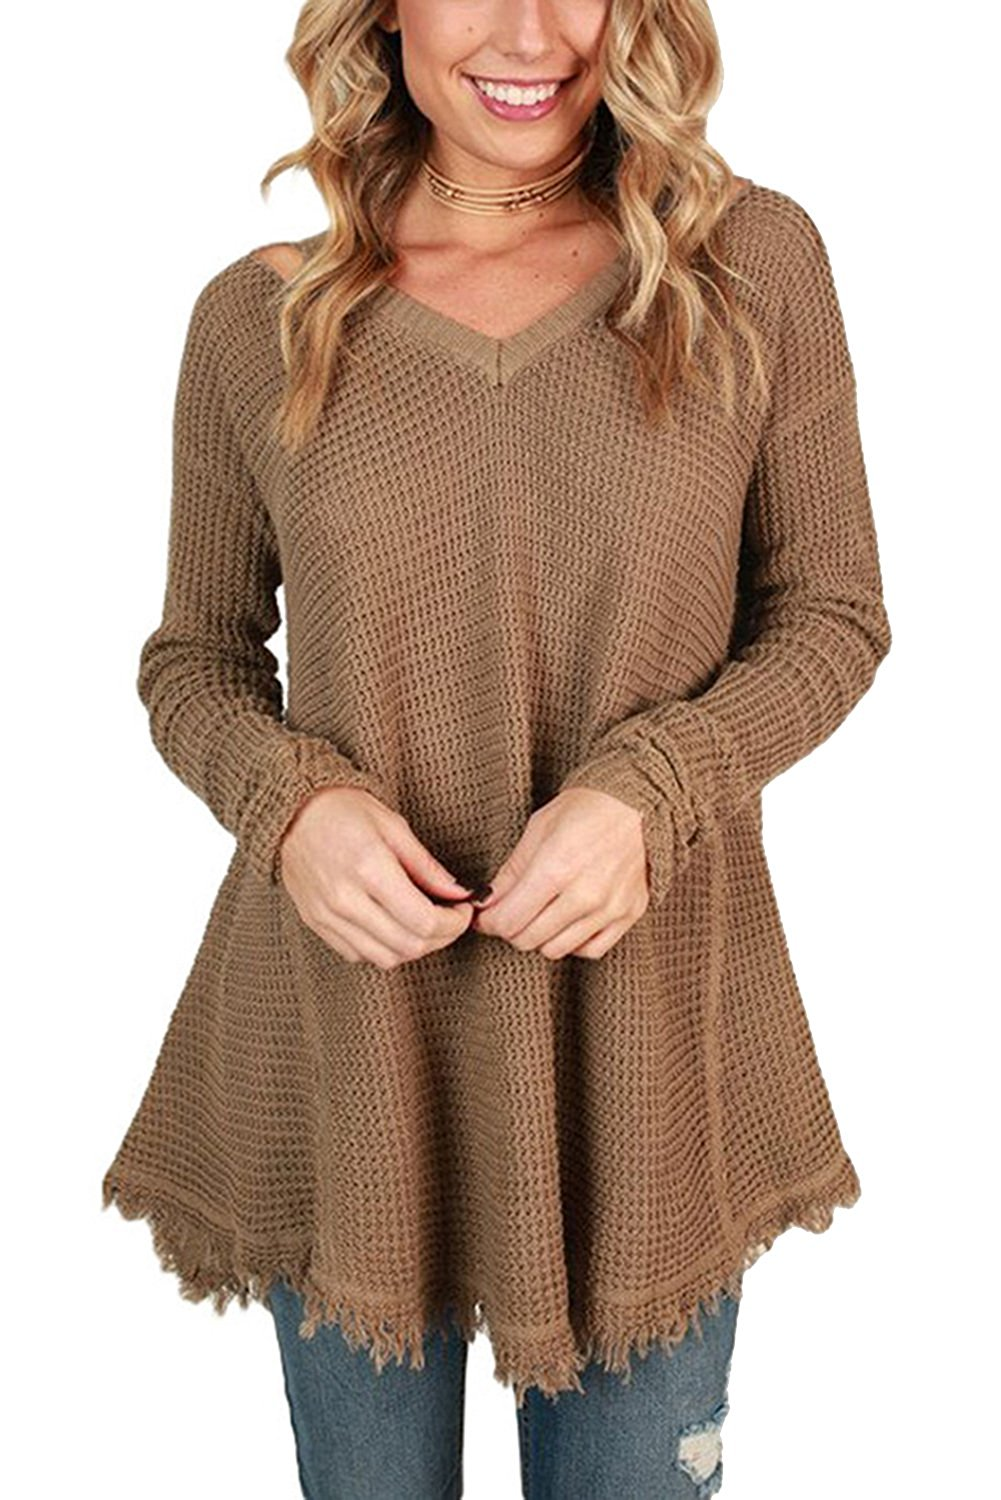 Byoauo Womens Sweaters Pullover Oversized V Neck Cold Shoulder Long Sleeve Top Blouse